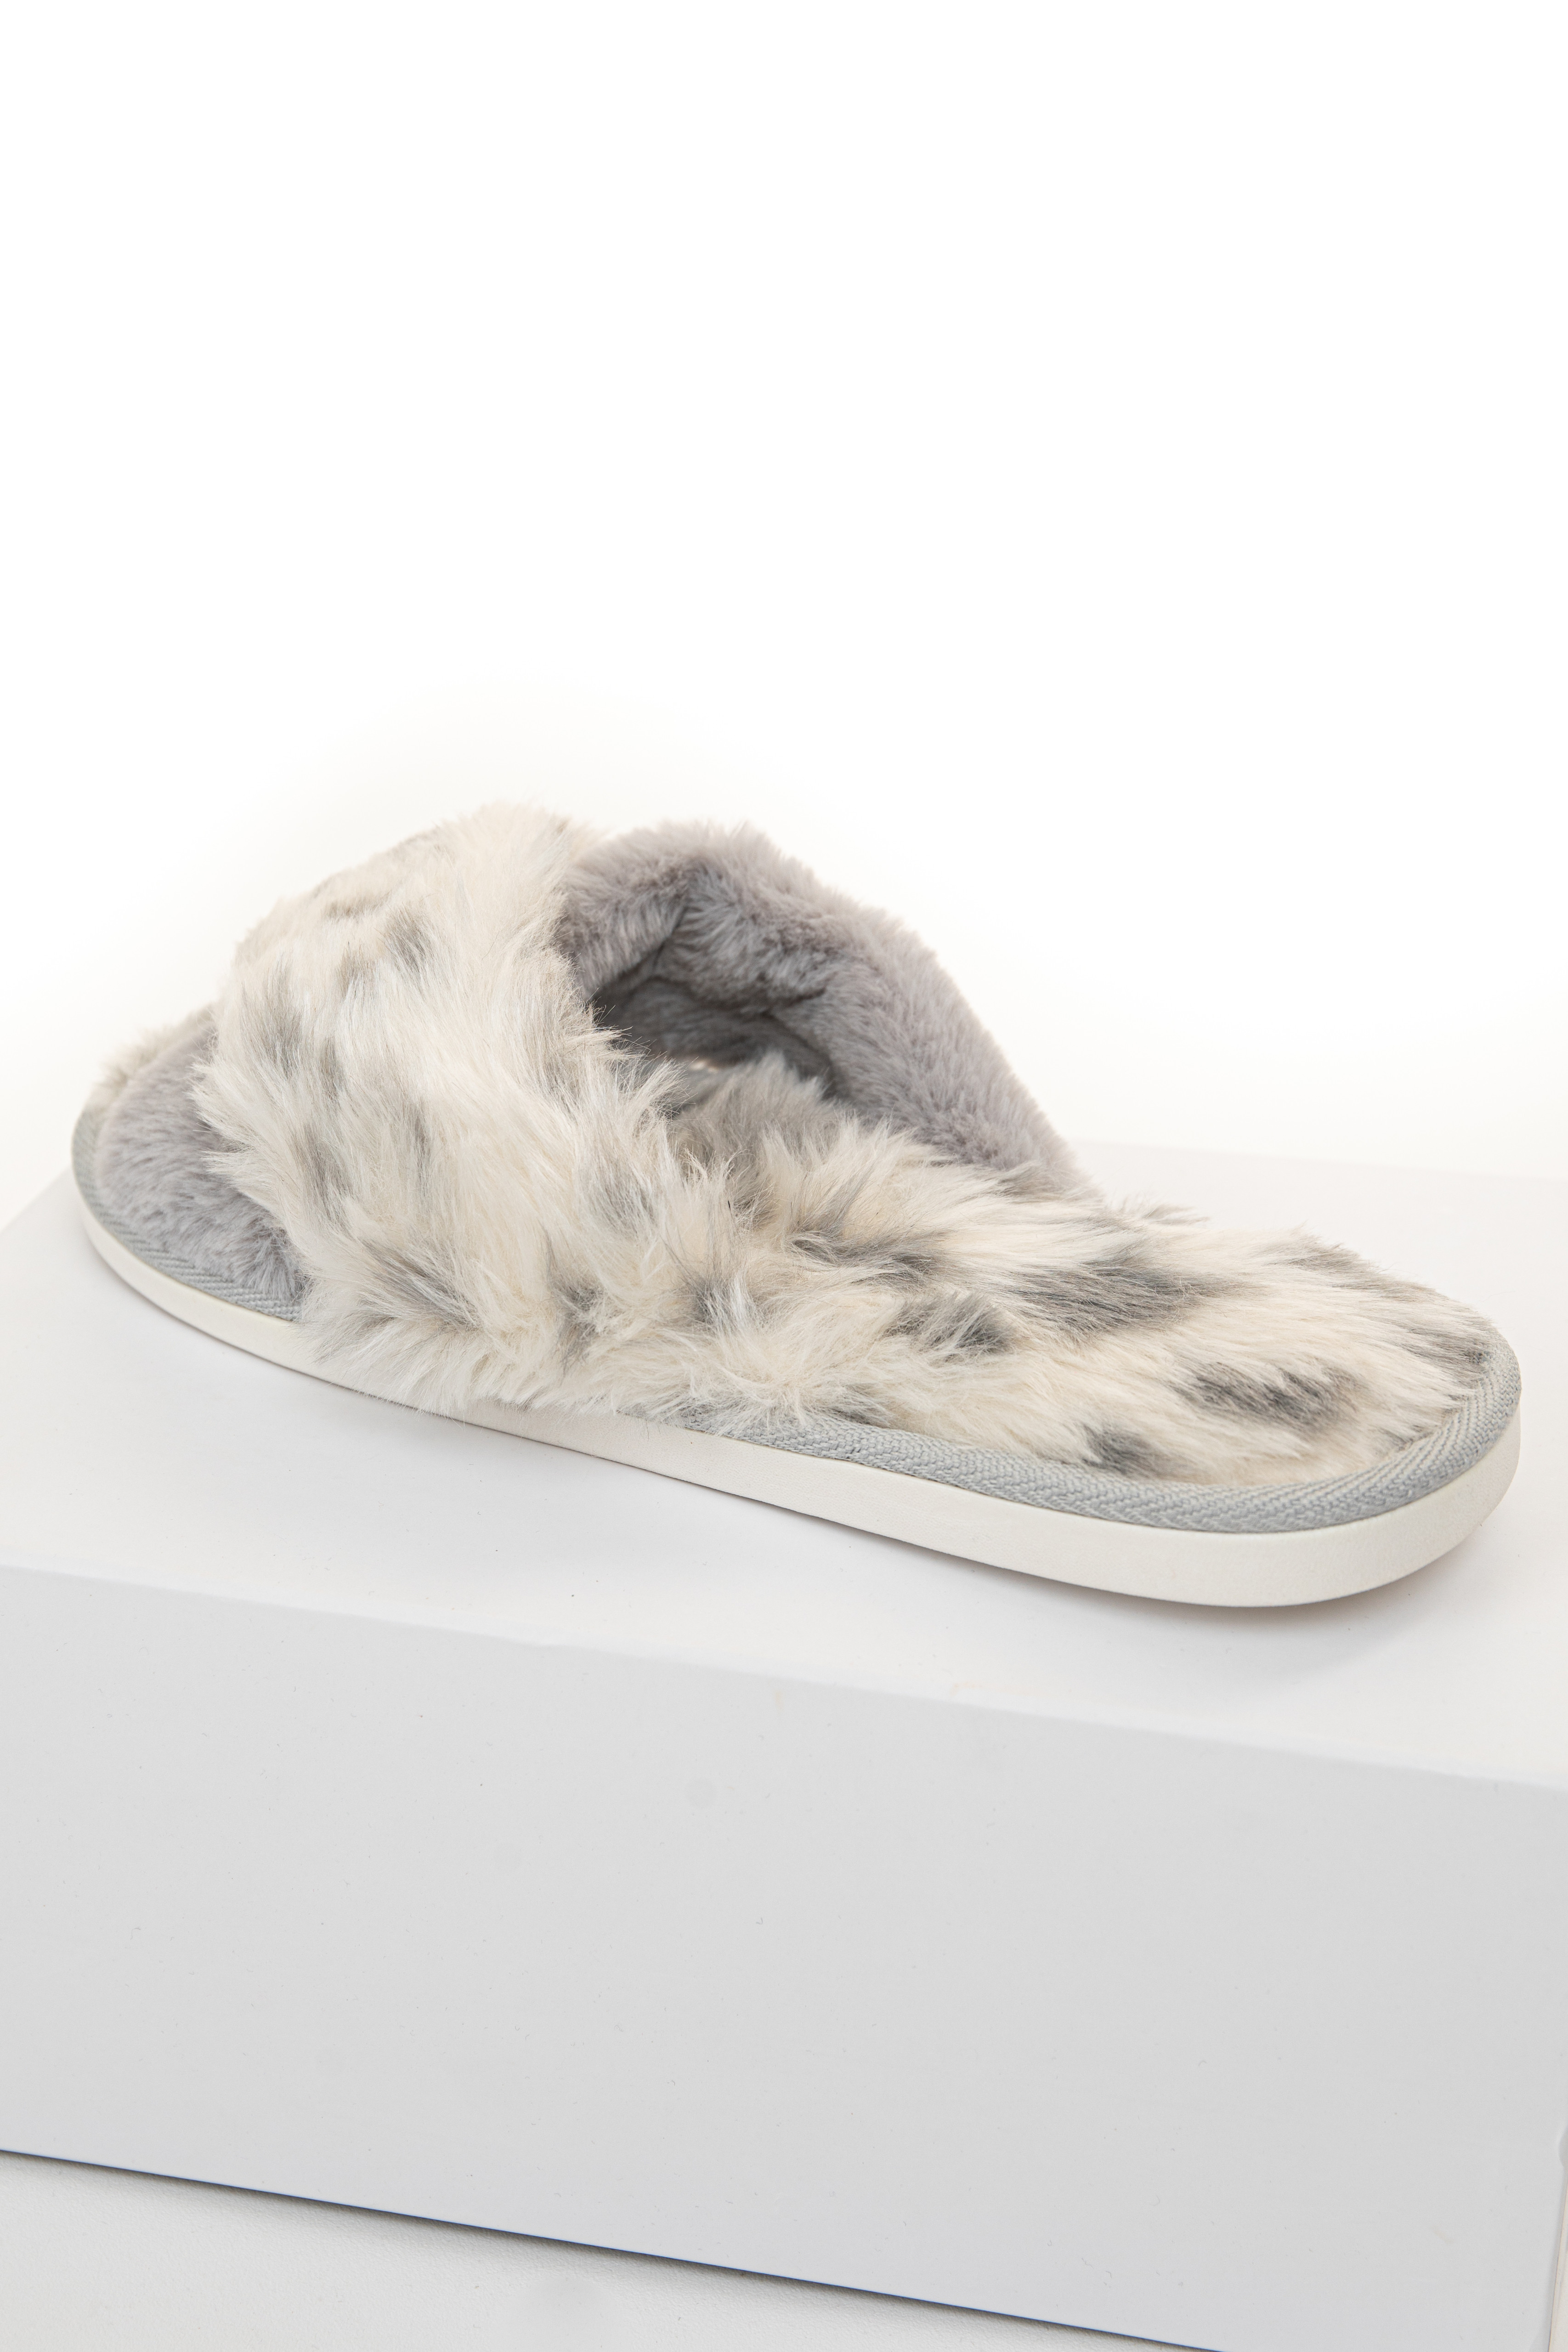 Grey and Ivory Spotted Faux Fur Slippers with Foam Sole